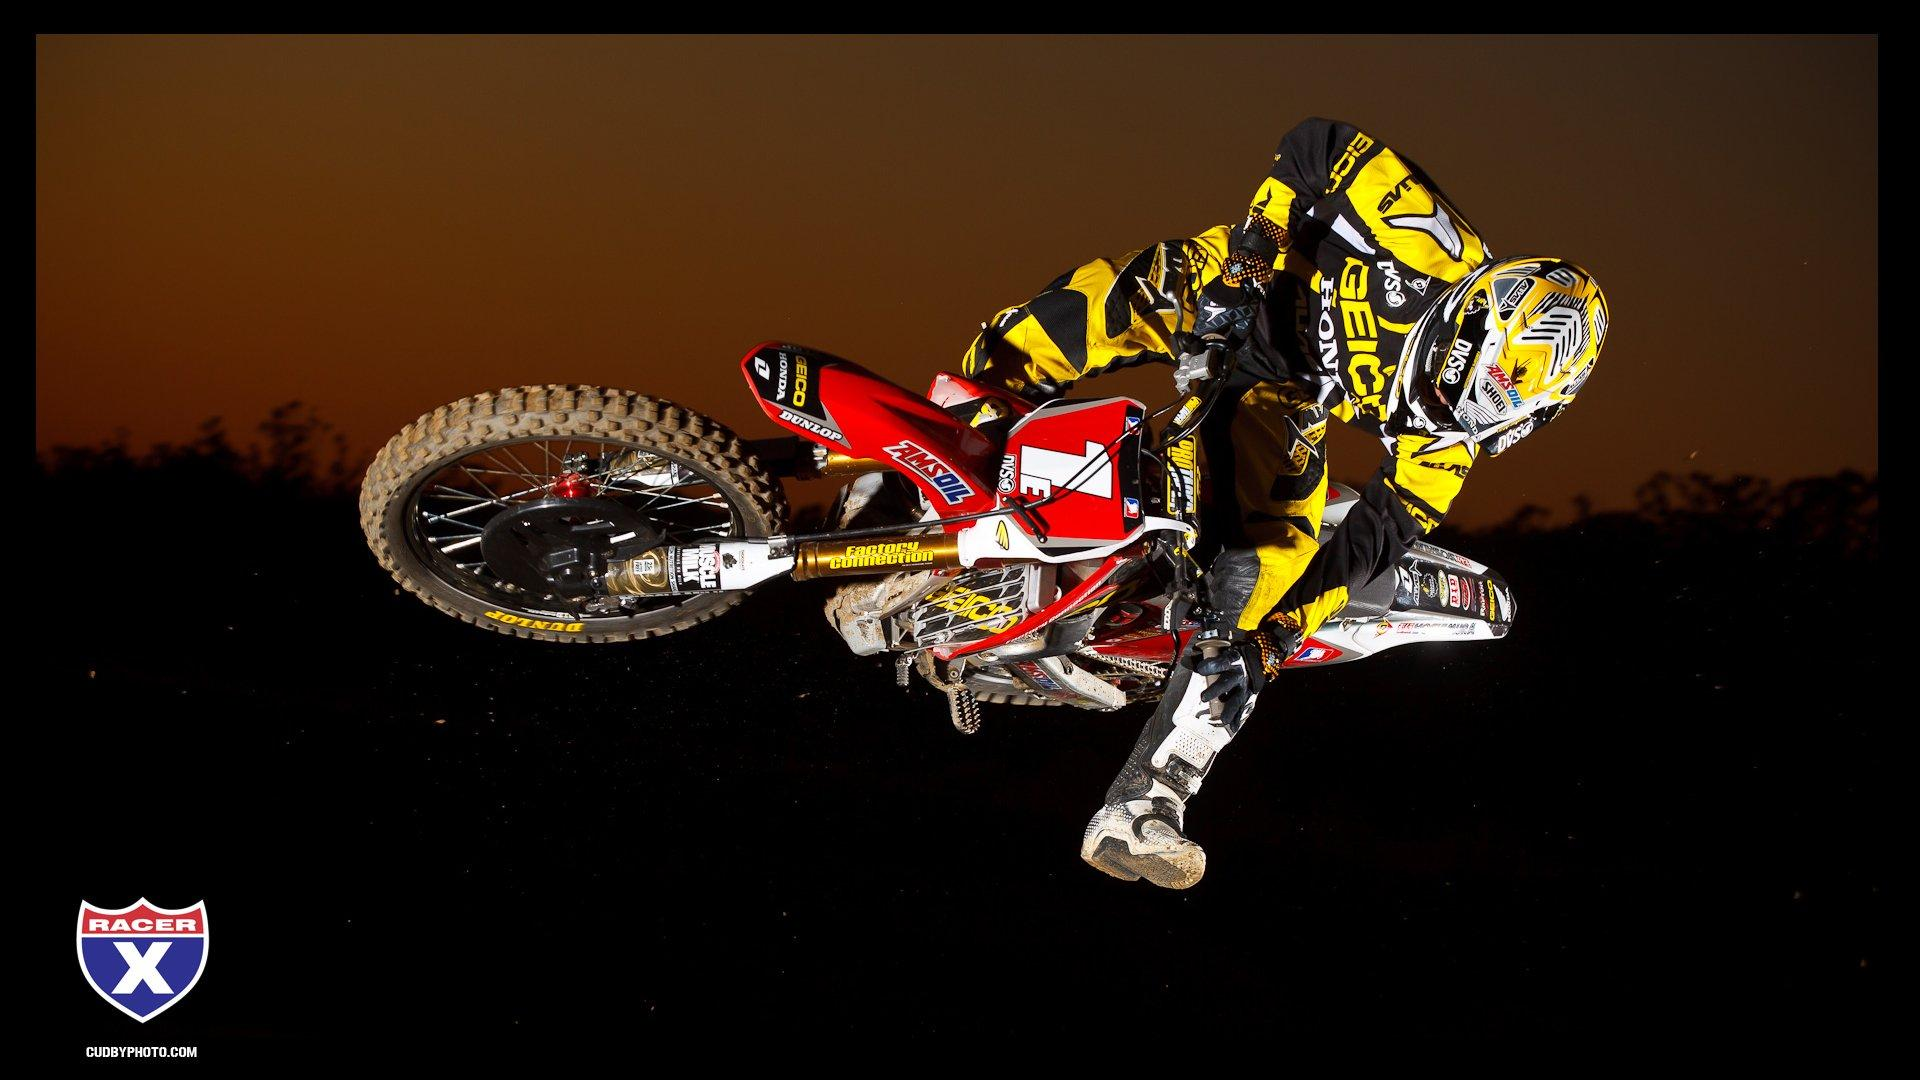 GEICO 2012 Wallpapers - Racer X Online